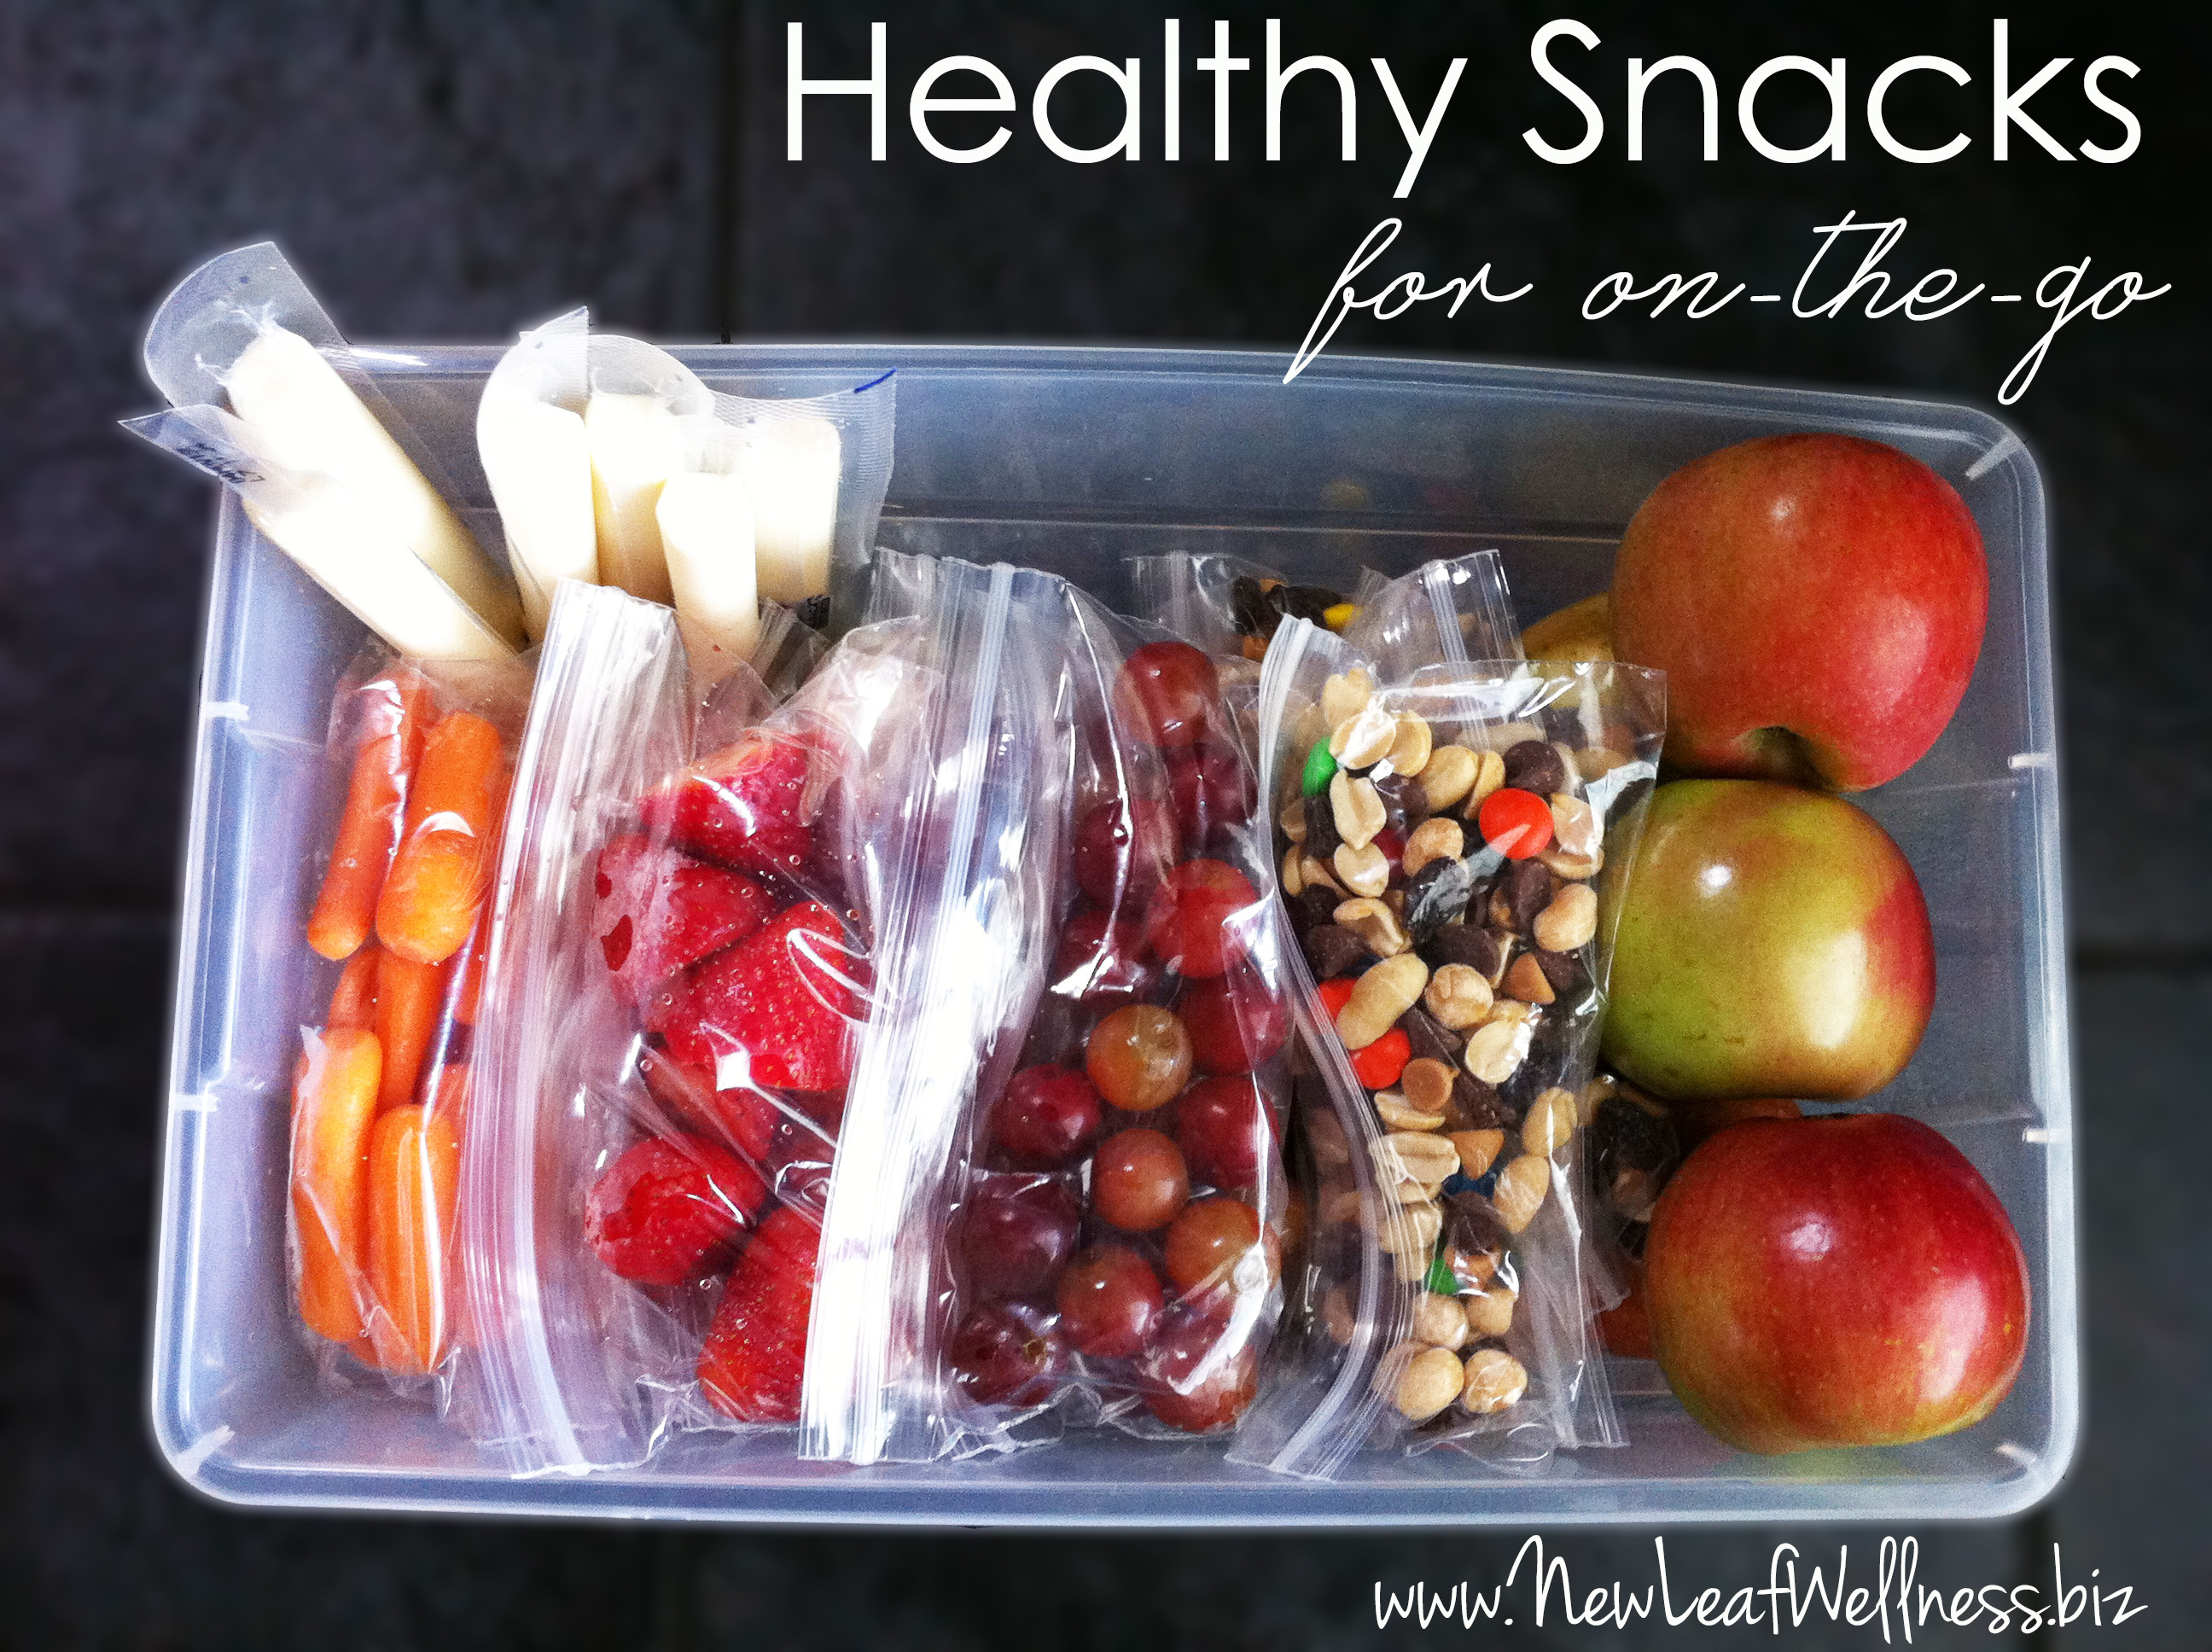 Healthy Snacks to Go the top 20 Ideas About Simple Healthy Snacking – New Leaf Wellness